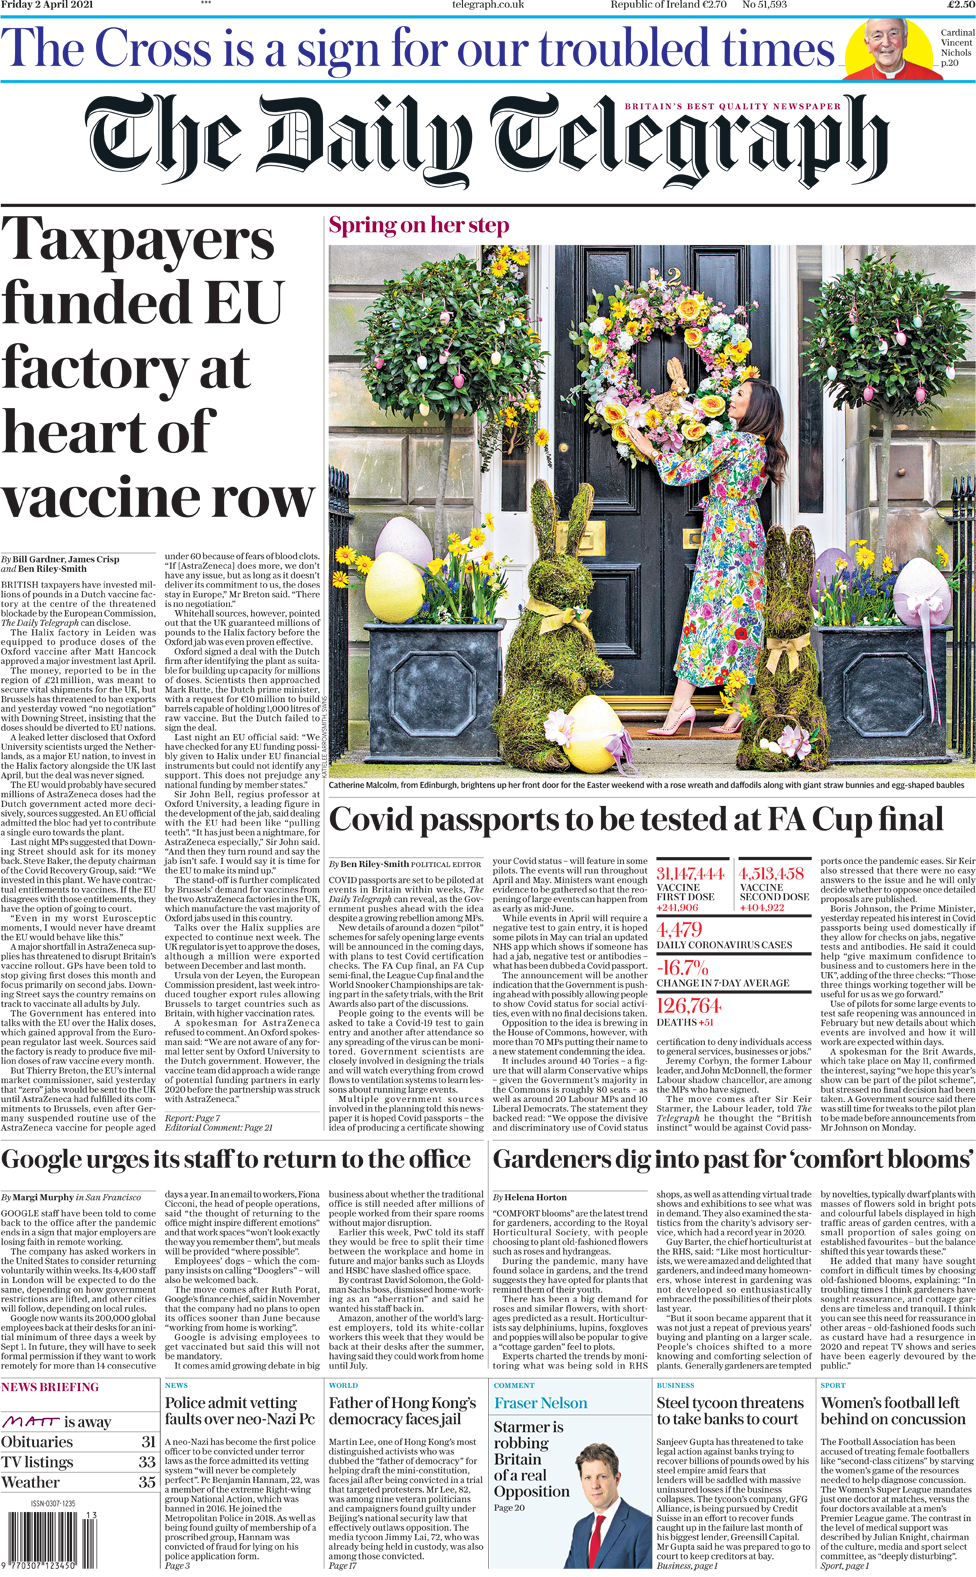 The Guardian front page 2 April 2021